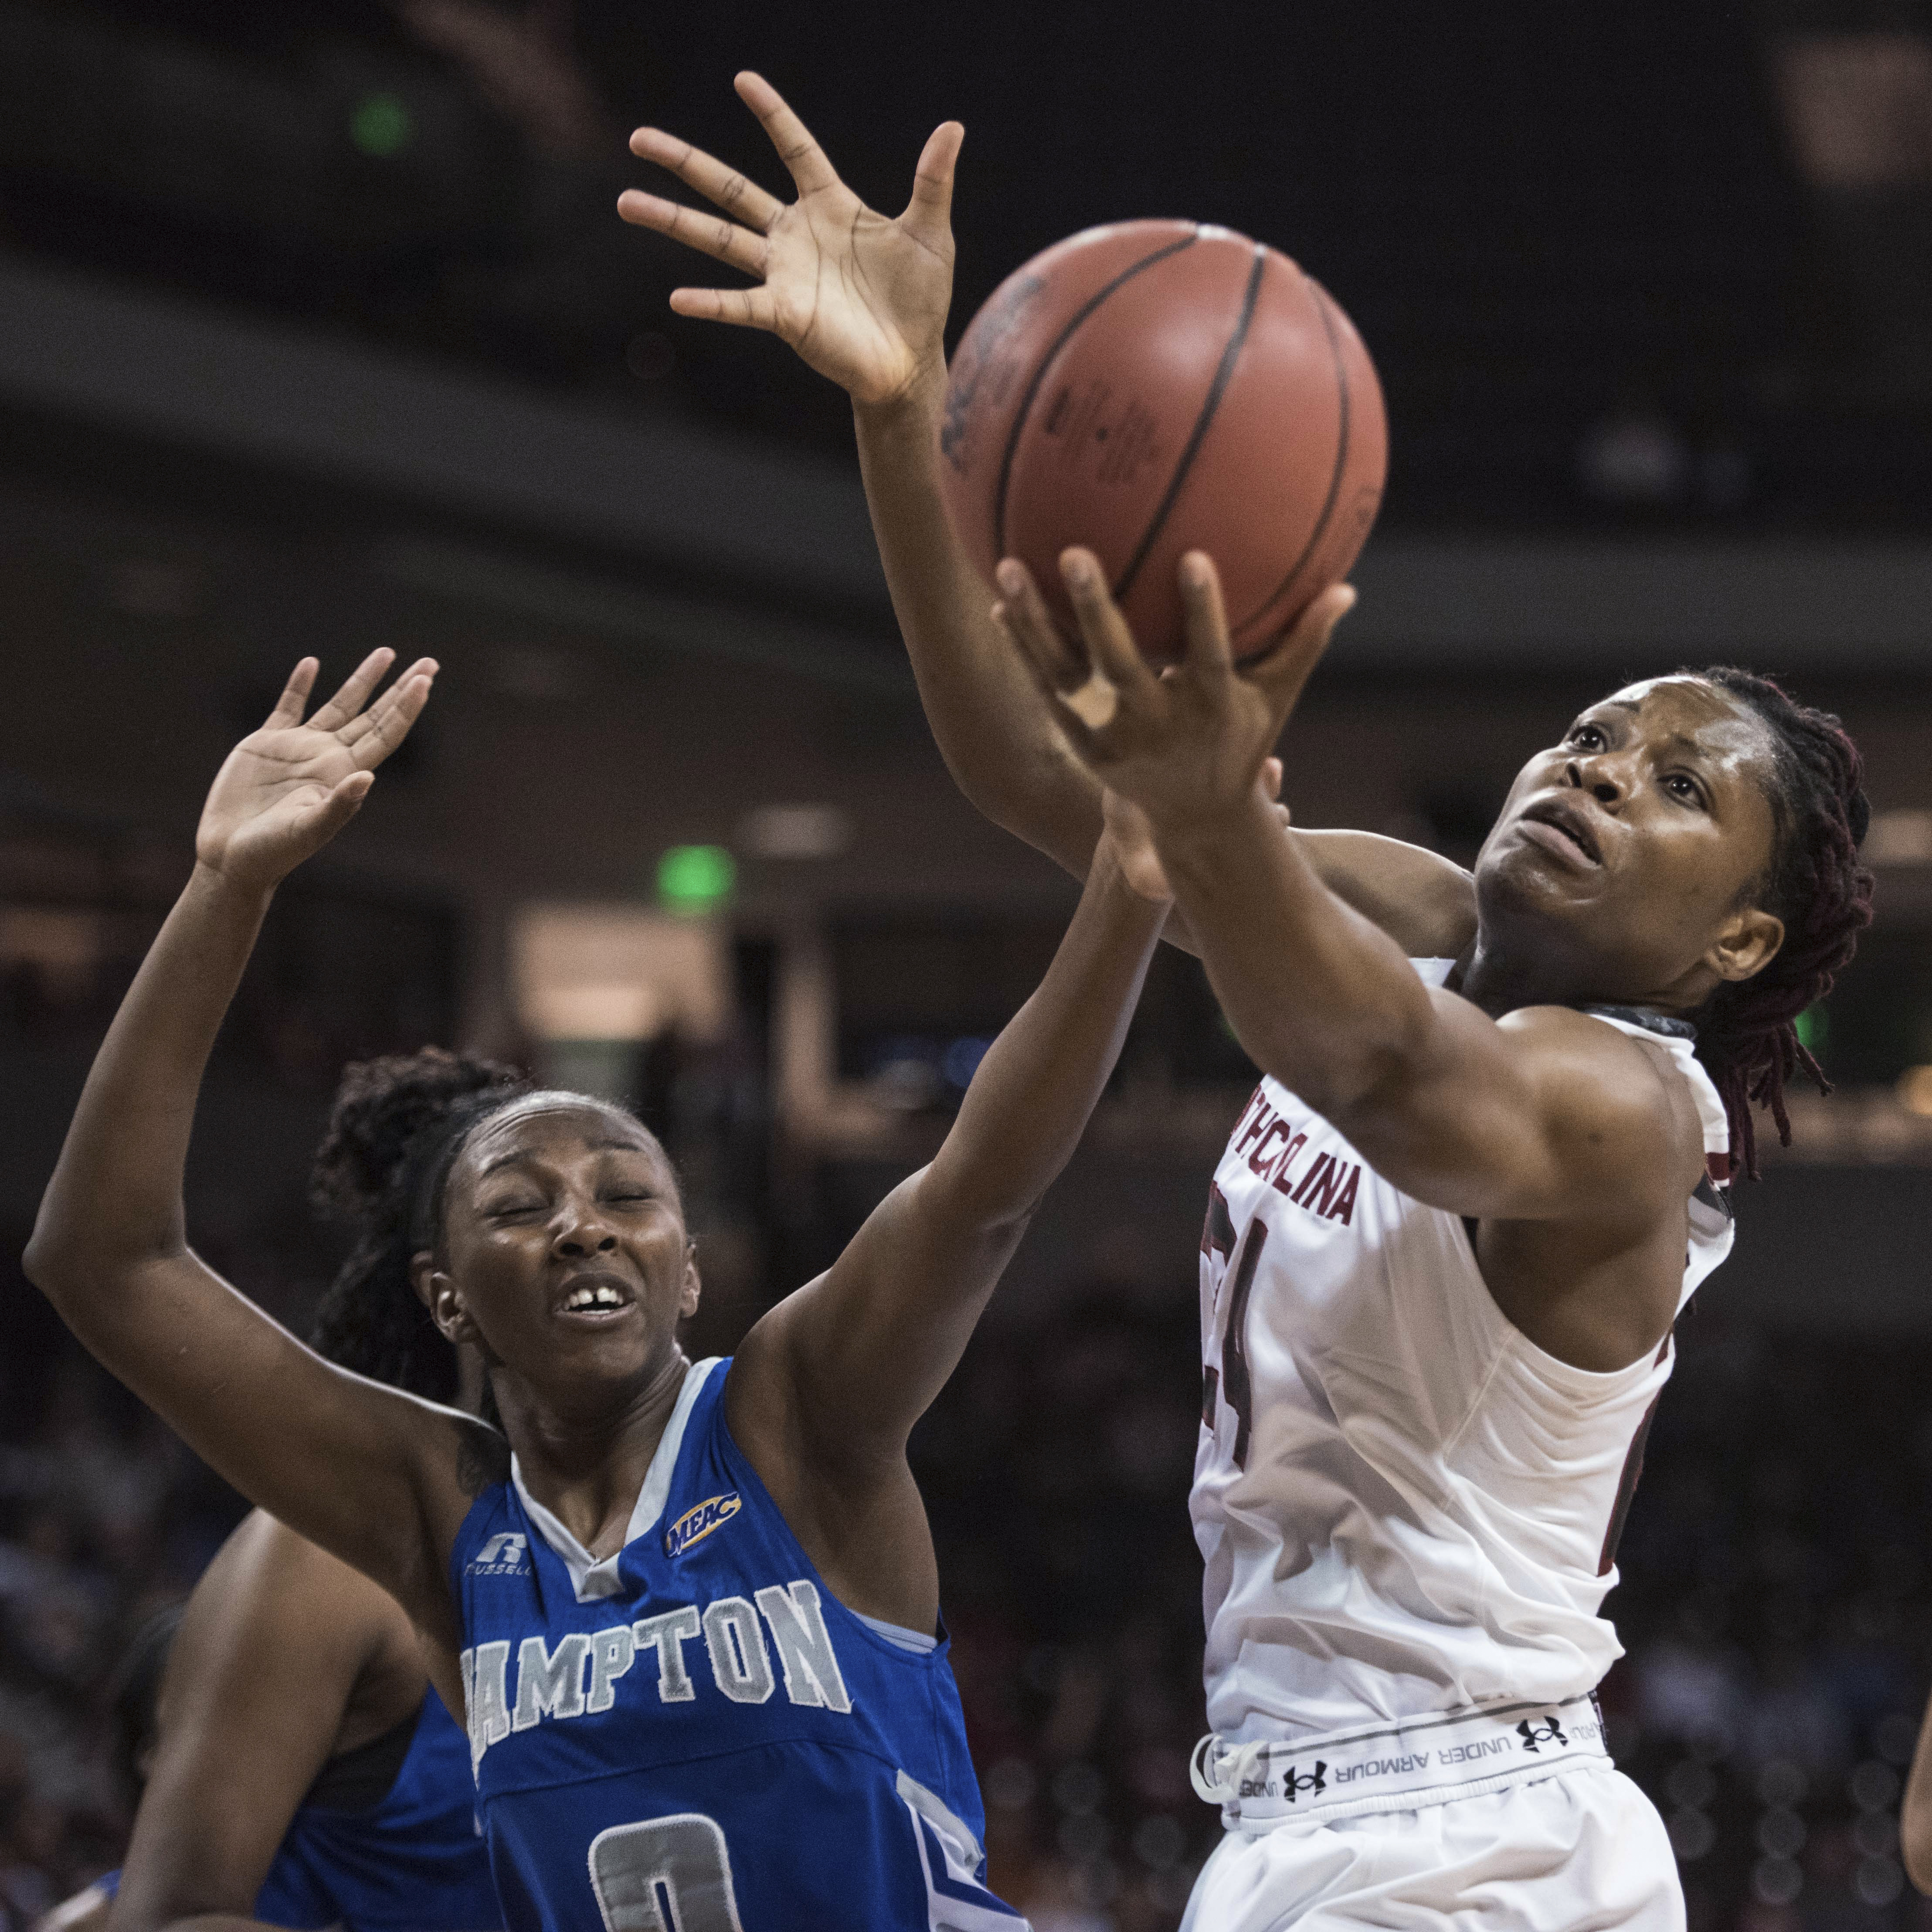 South Carolina forward Sarah Imovbioh, right, reaches for a rebound against Hampton guard Malia Tate-DeFreitas, left, during the first half of an NCAA college basketball game Wednesday, Dec. 16, 2015, in Columbia, S.C.  (AP Photo/Sean Rayford)